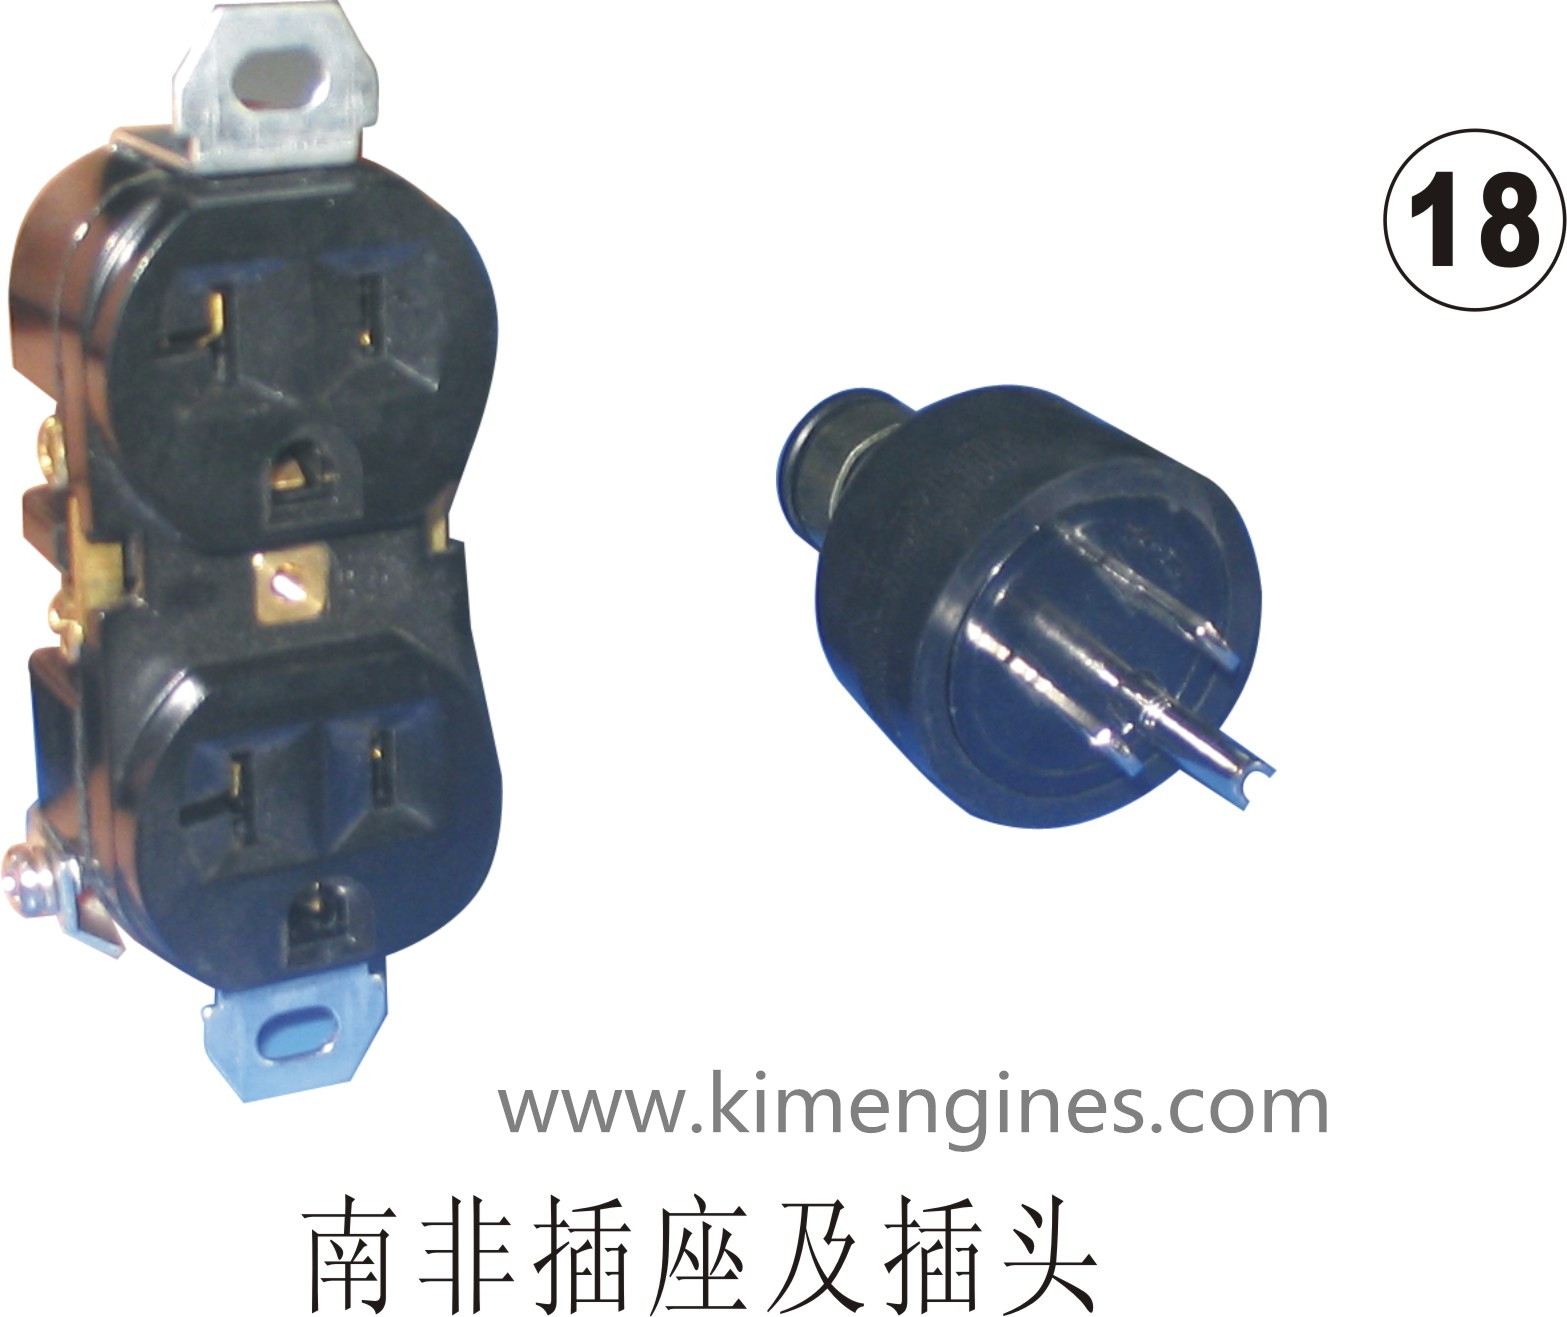 Plug / socket for GX120, GX160-200, GX240-420 generatror